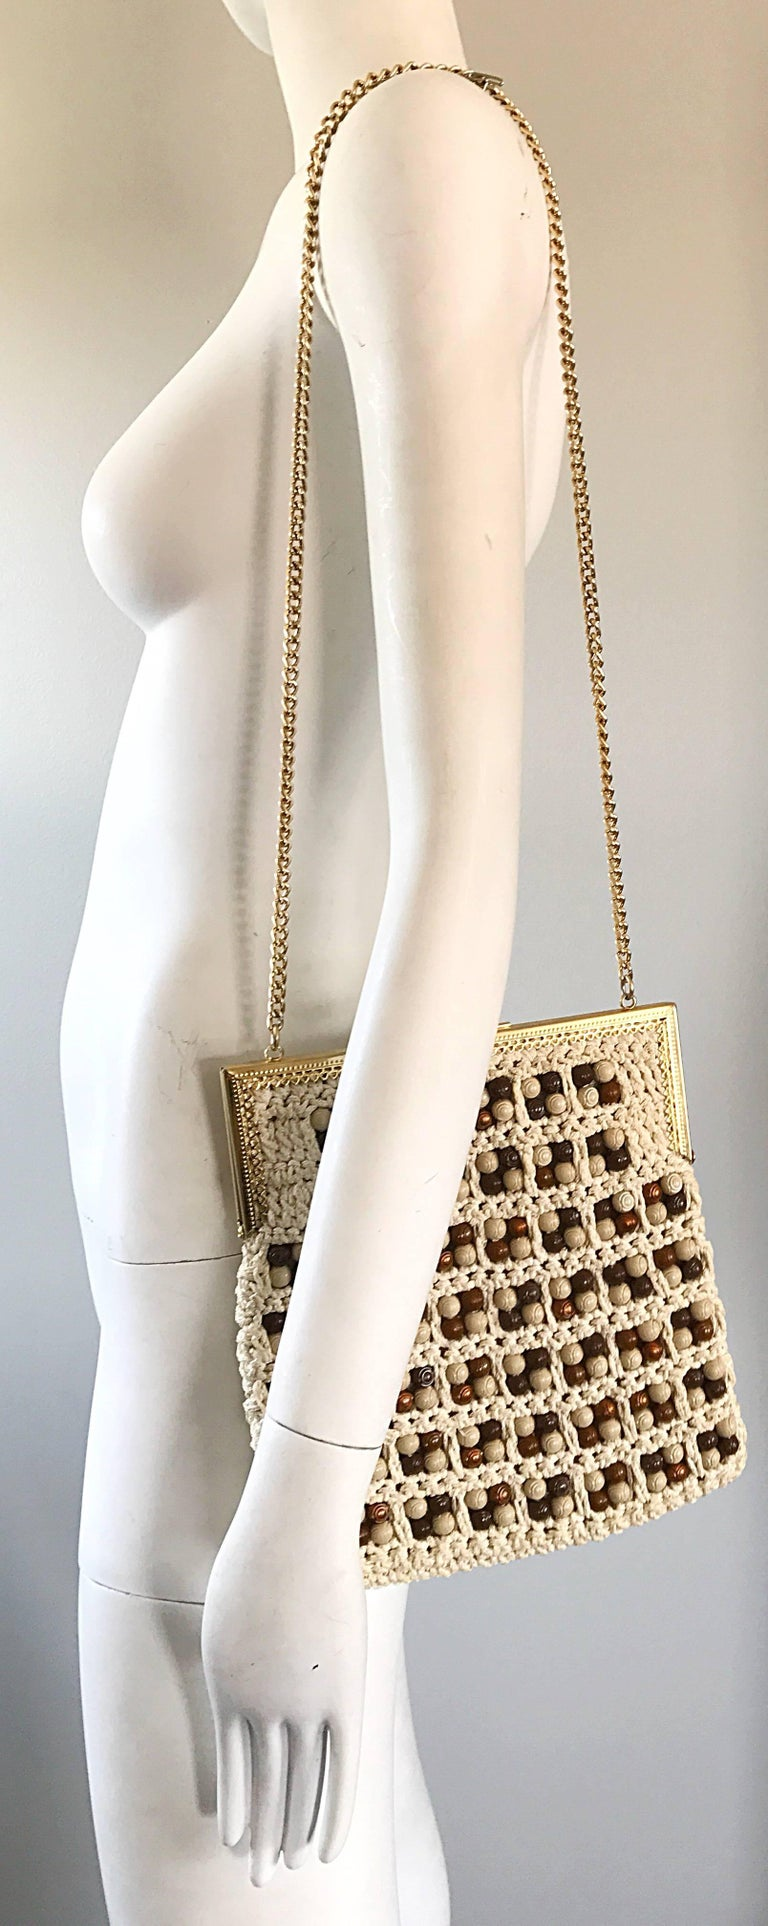 Chic 70s Italian ivory / white and brown hand crochet boho shoulder handbag! Features hundreds of brown wood looking beads on each side. The perfect size to fit all the essentials (smartphone, wallet, makeup, etc. Secure clasp closure. Gold chain